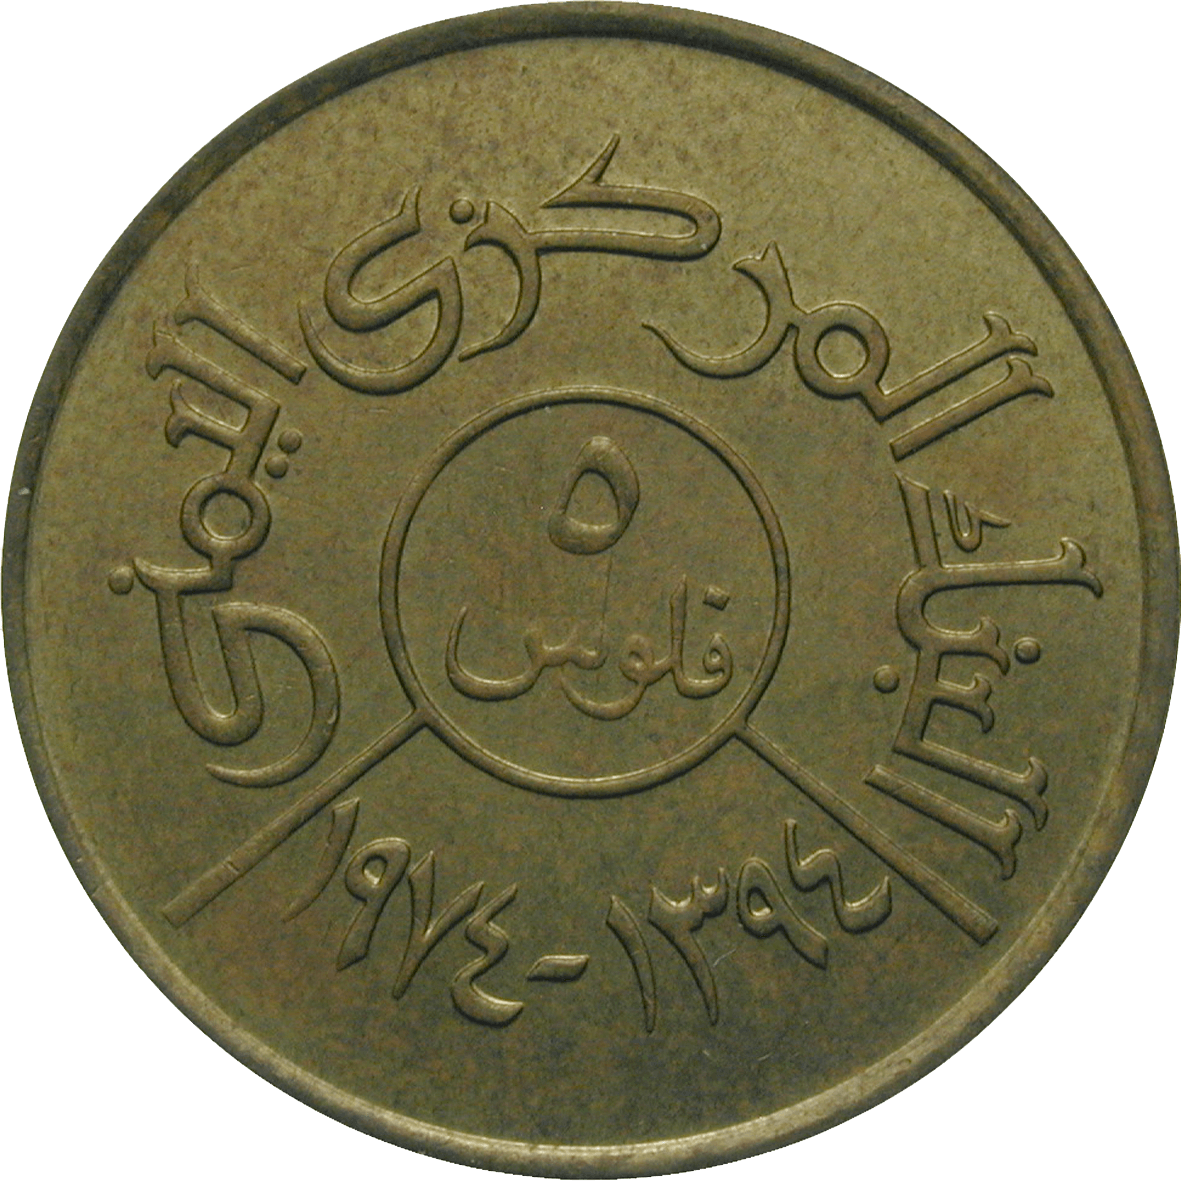 Yemen Arab Republic (North Yemen), 5 Fils 1394 AH (reverse)